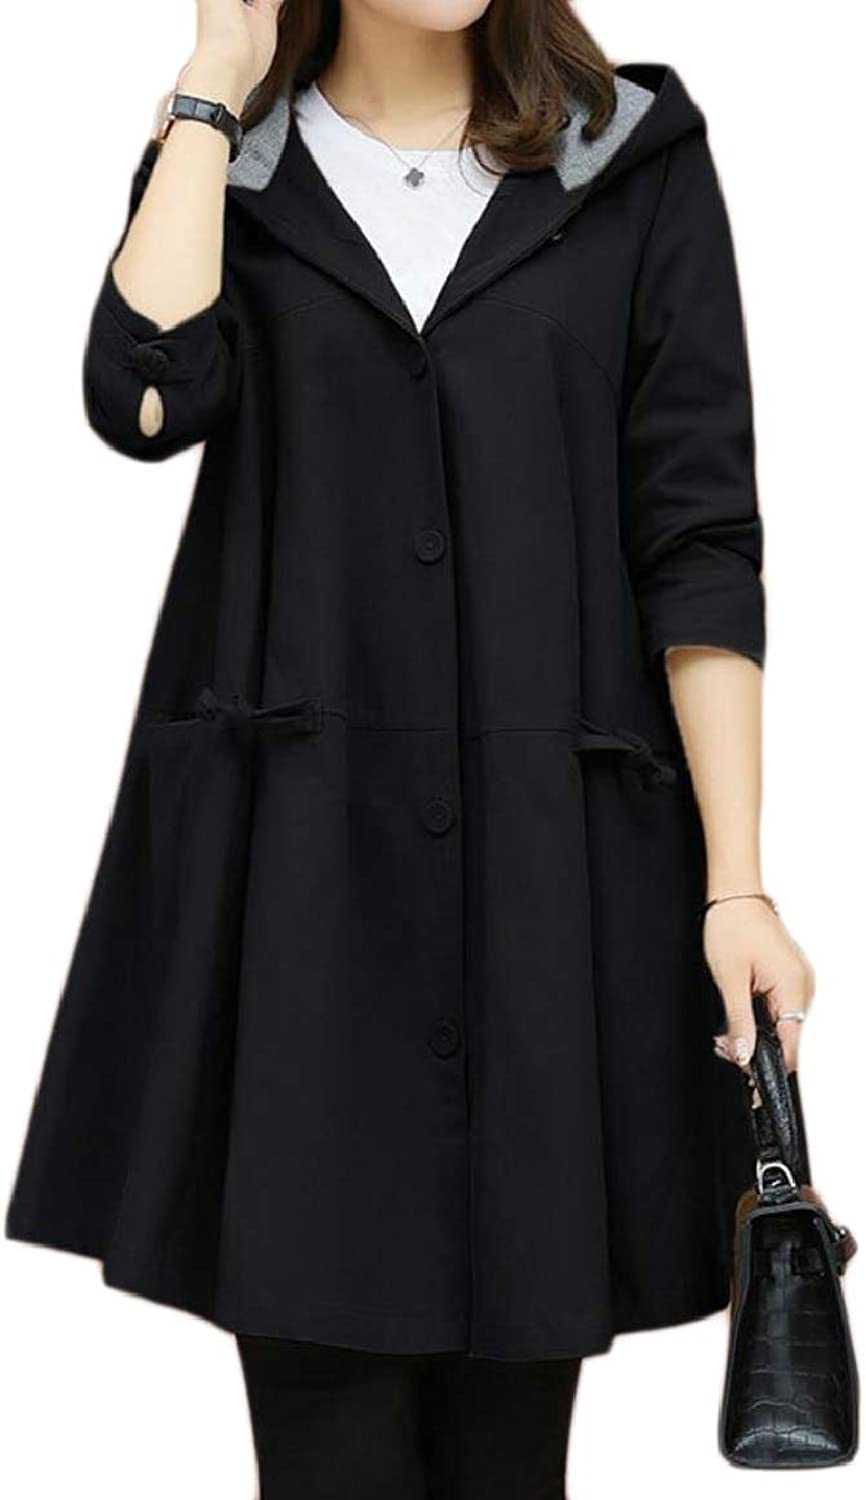 RGCA Women Flared Overcoat Single Breasted Jackets Casual Hoodies Trench Coat